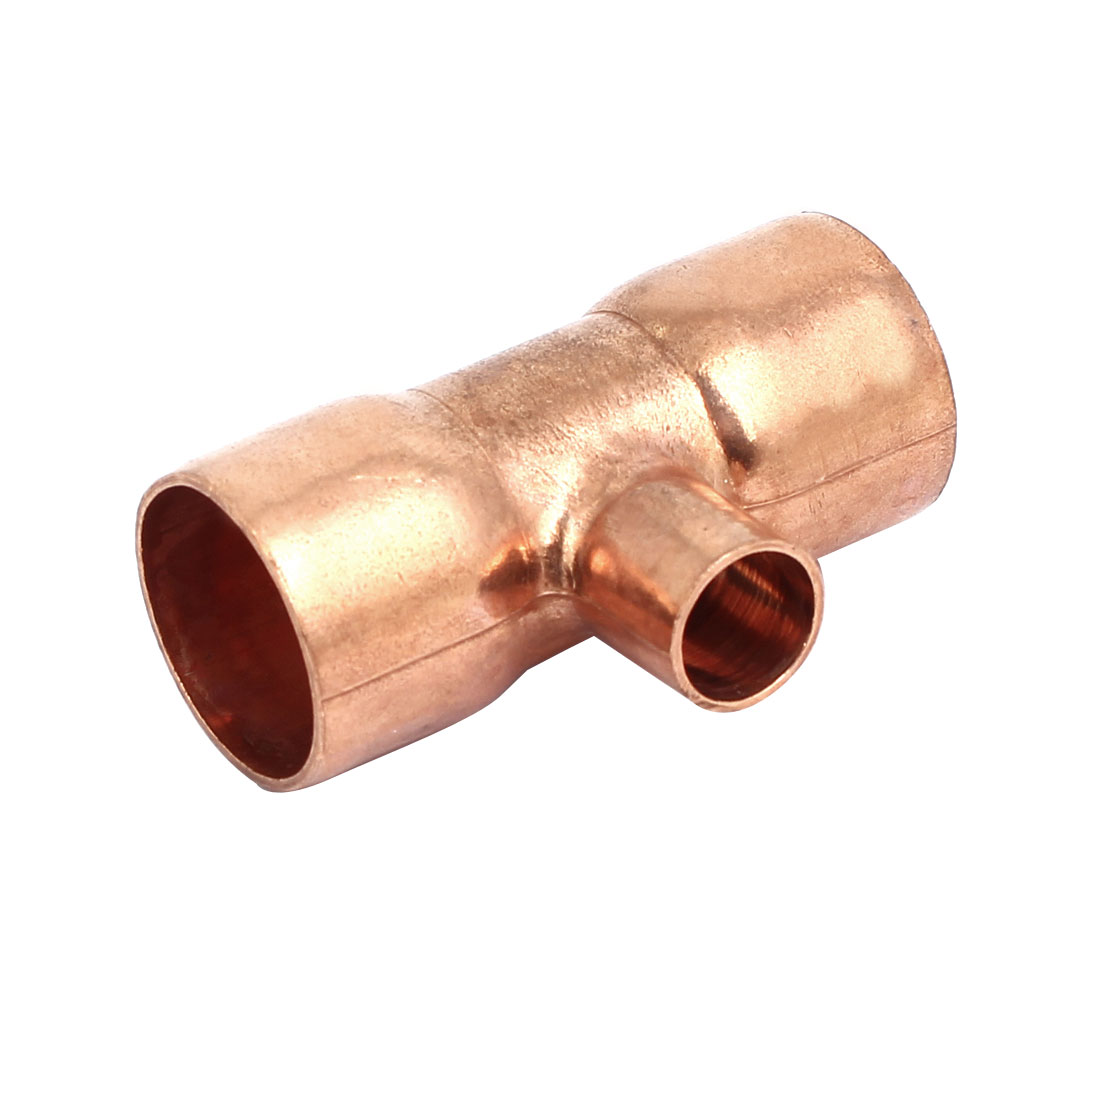 25mmx12.7mm Air Conditioner Copper Tee Joint Seperation Tube Connector